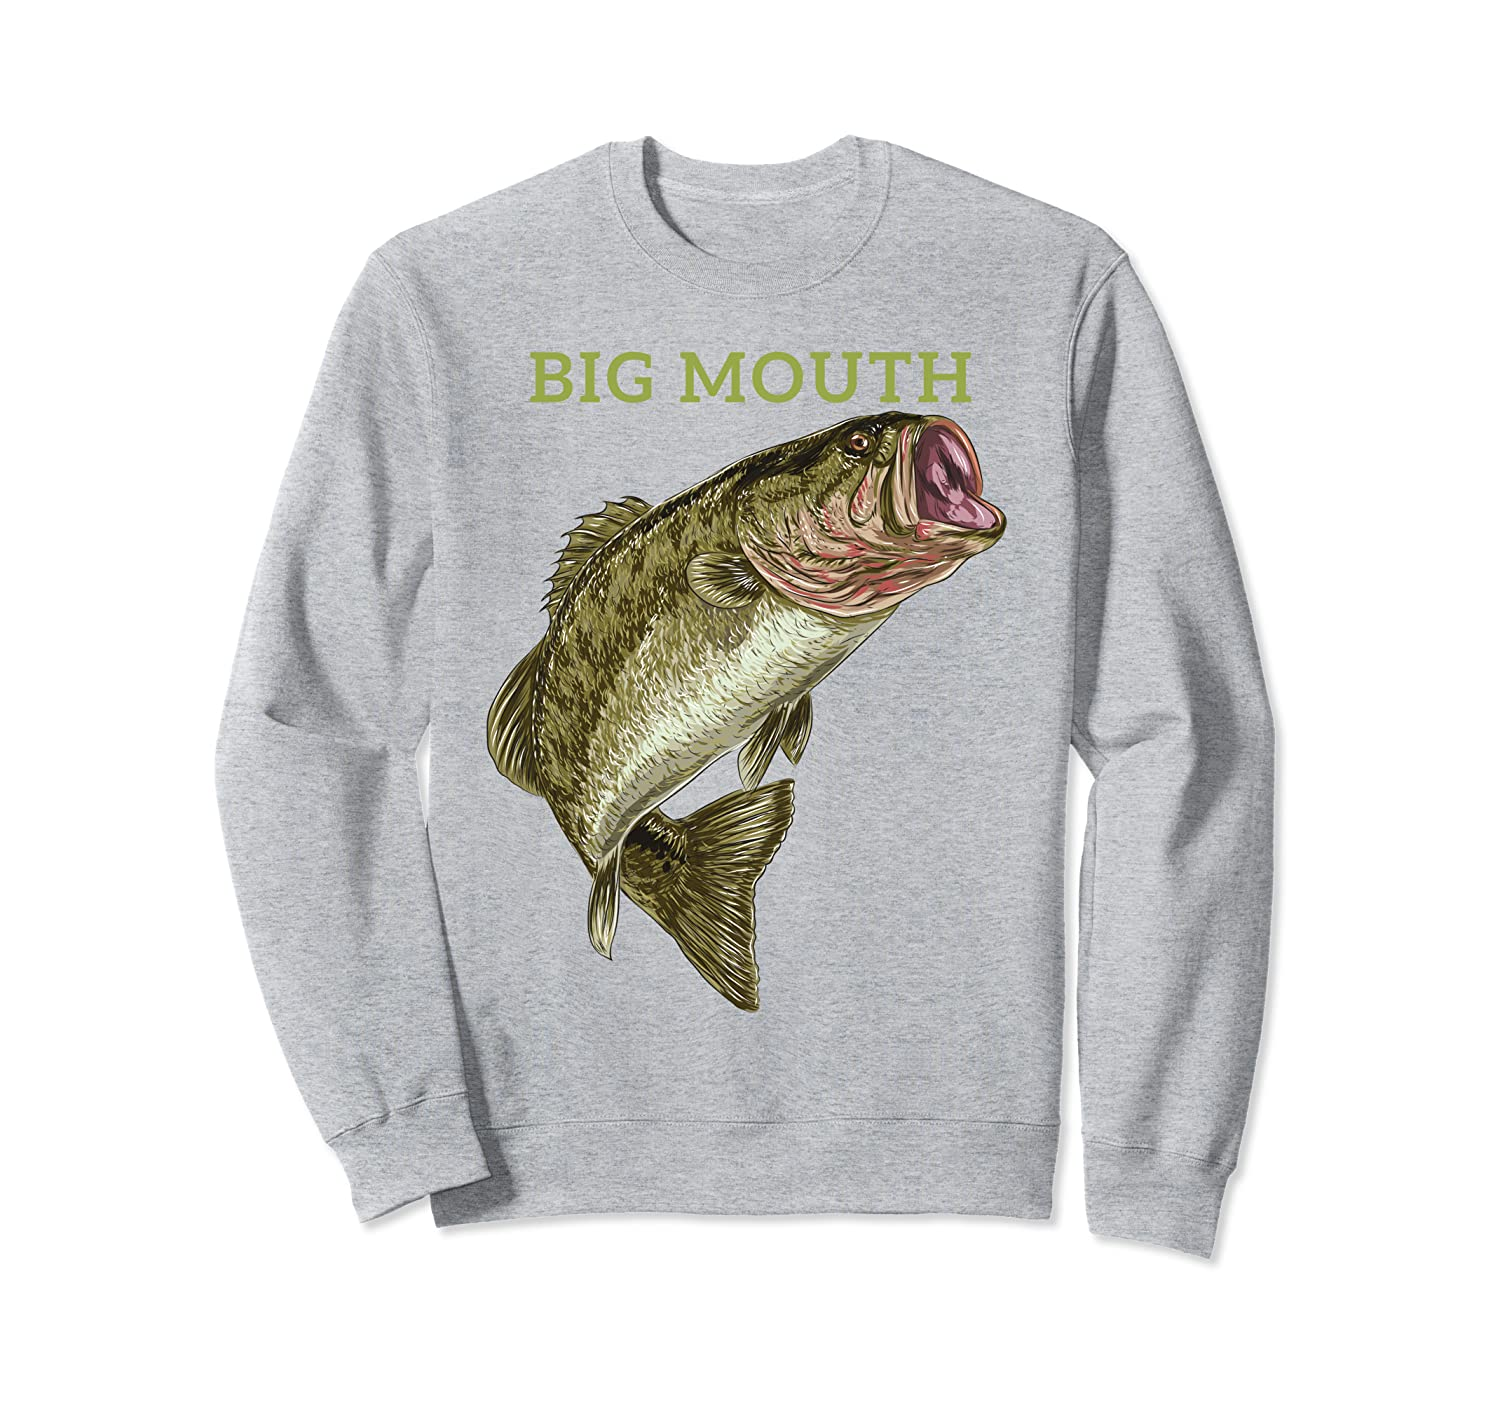 Bass big mouth funny fishing design, special for laughs gift Sweatshirt